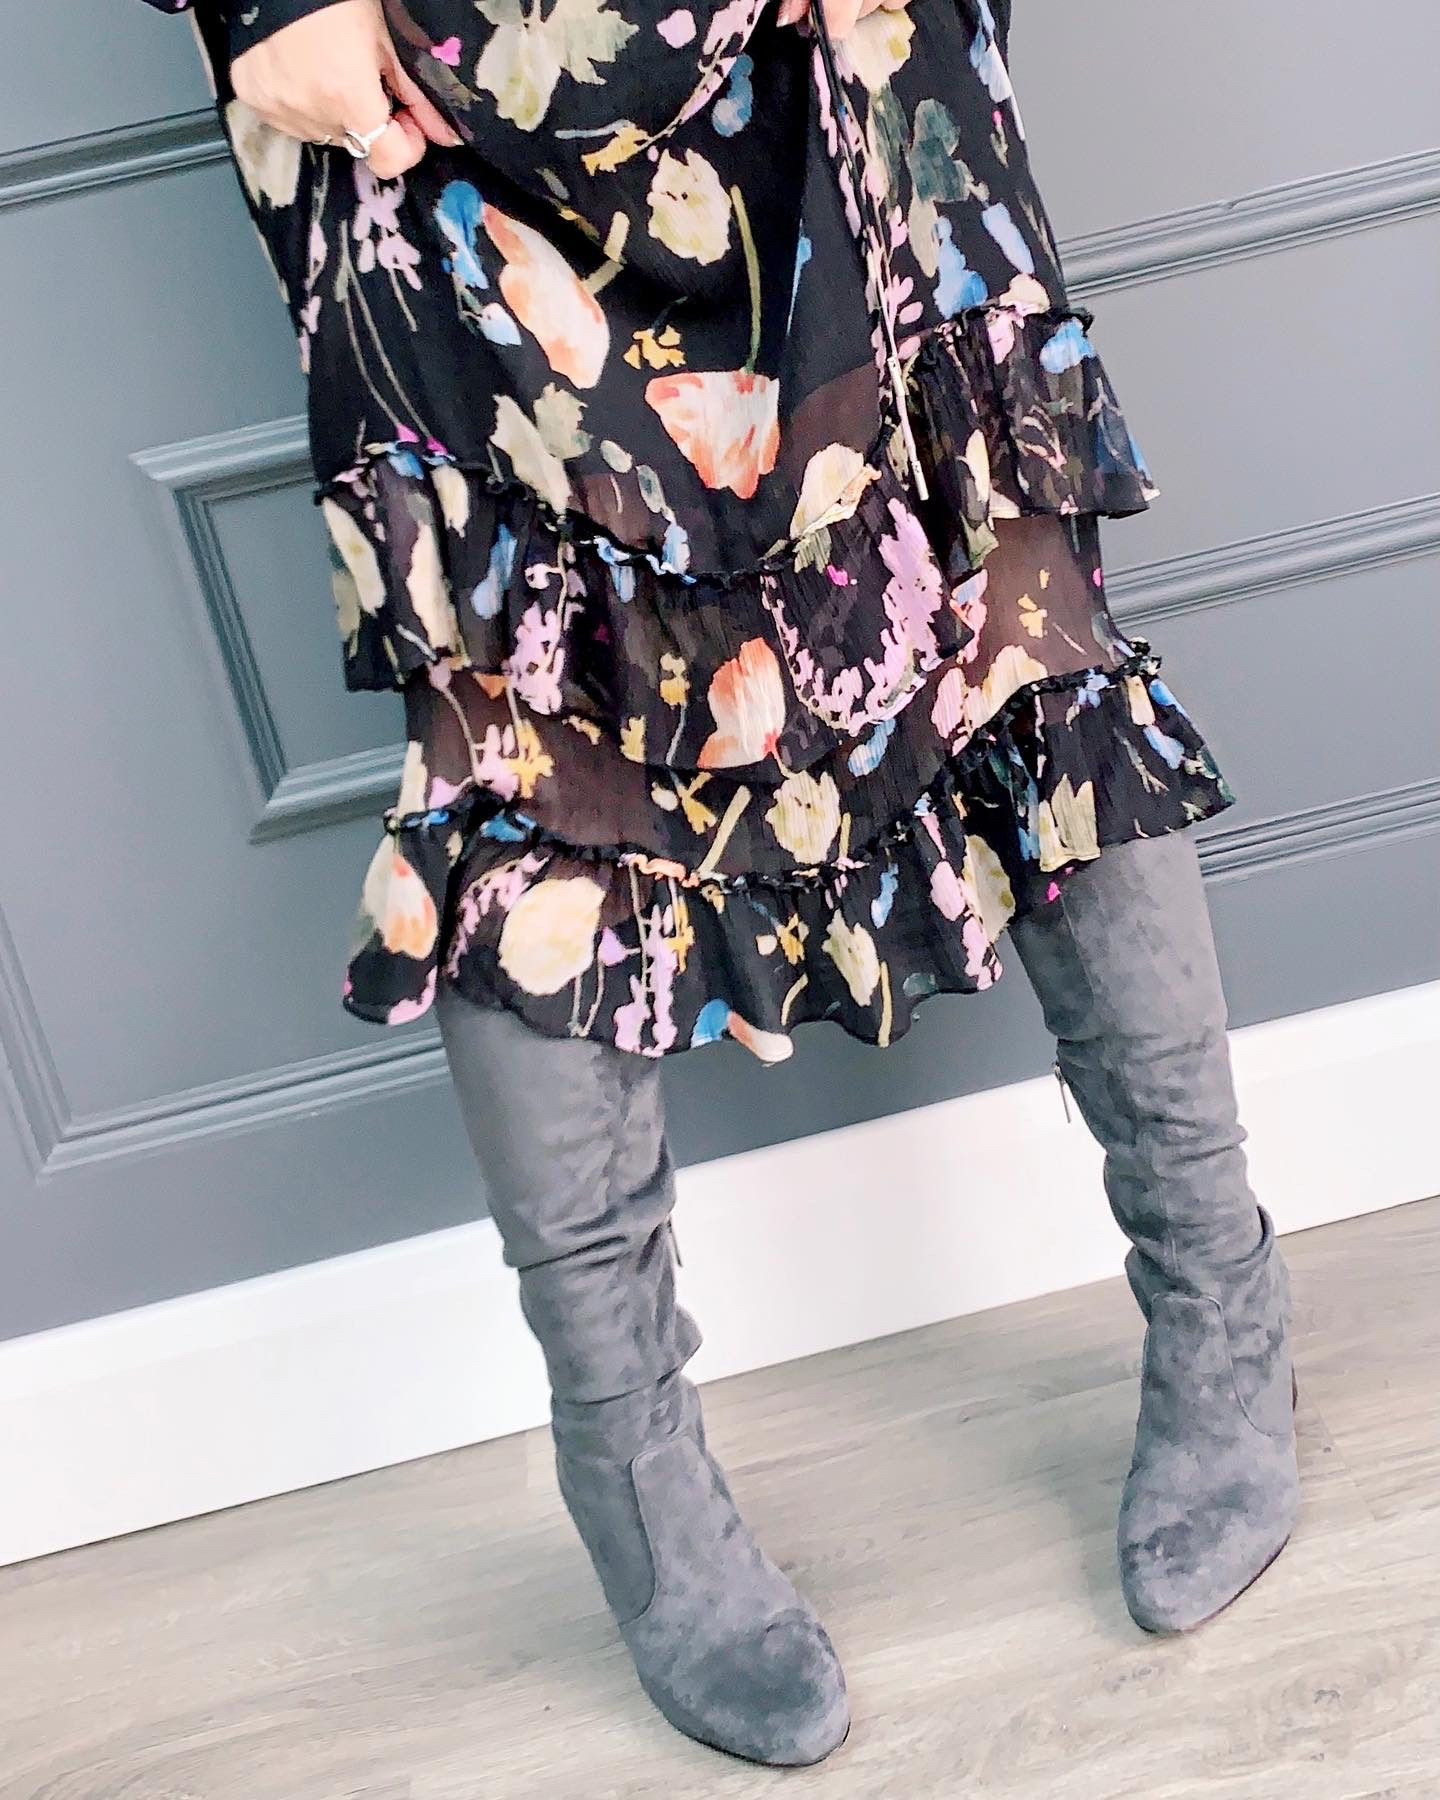 Duoboots knee boots that fit your calves